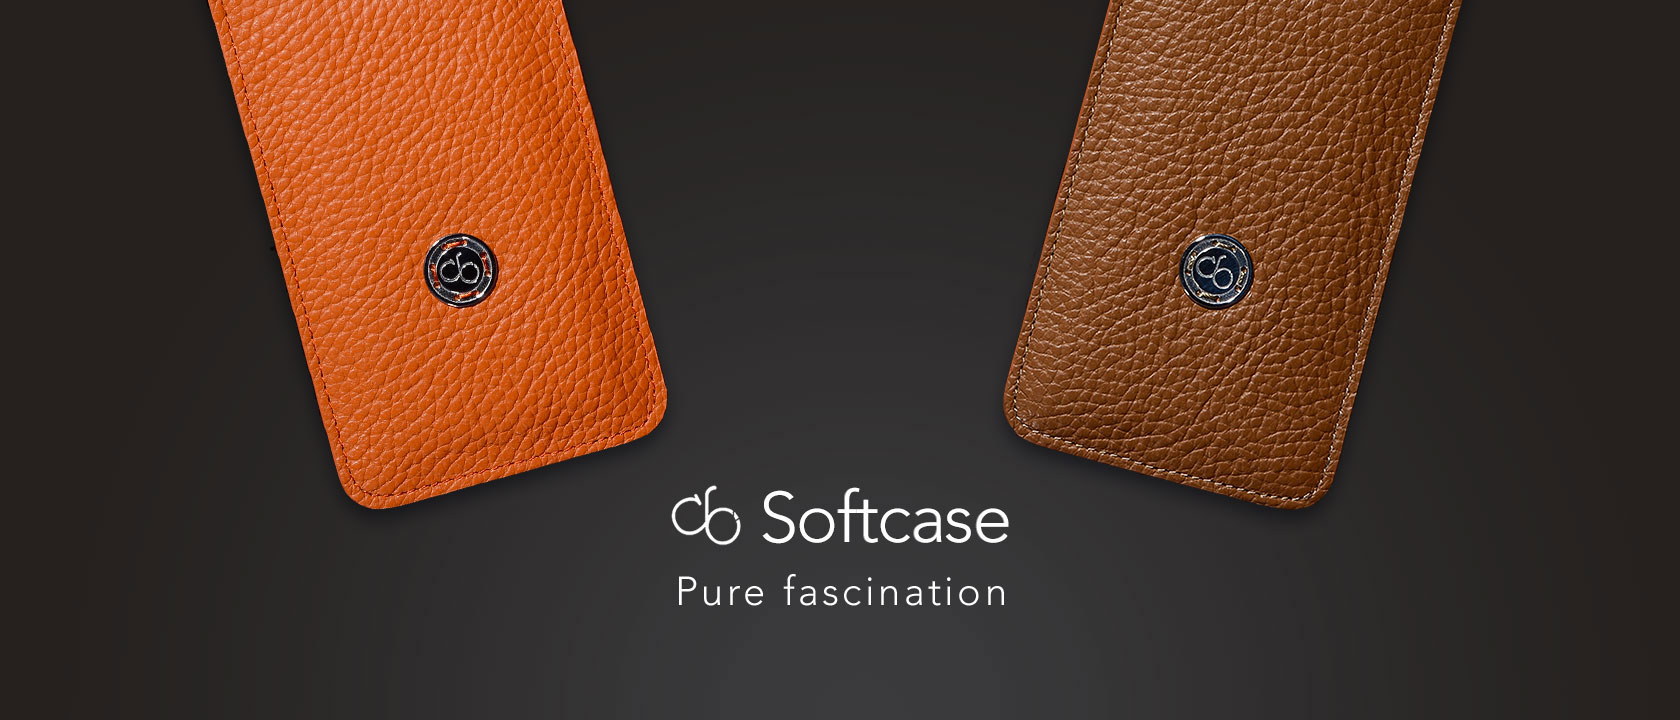 cb Softcase